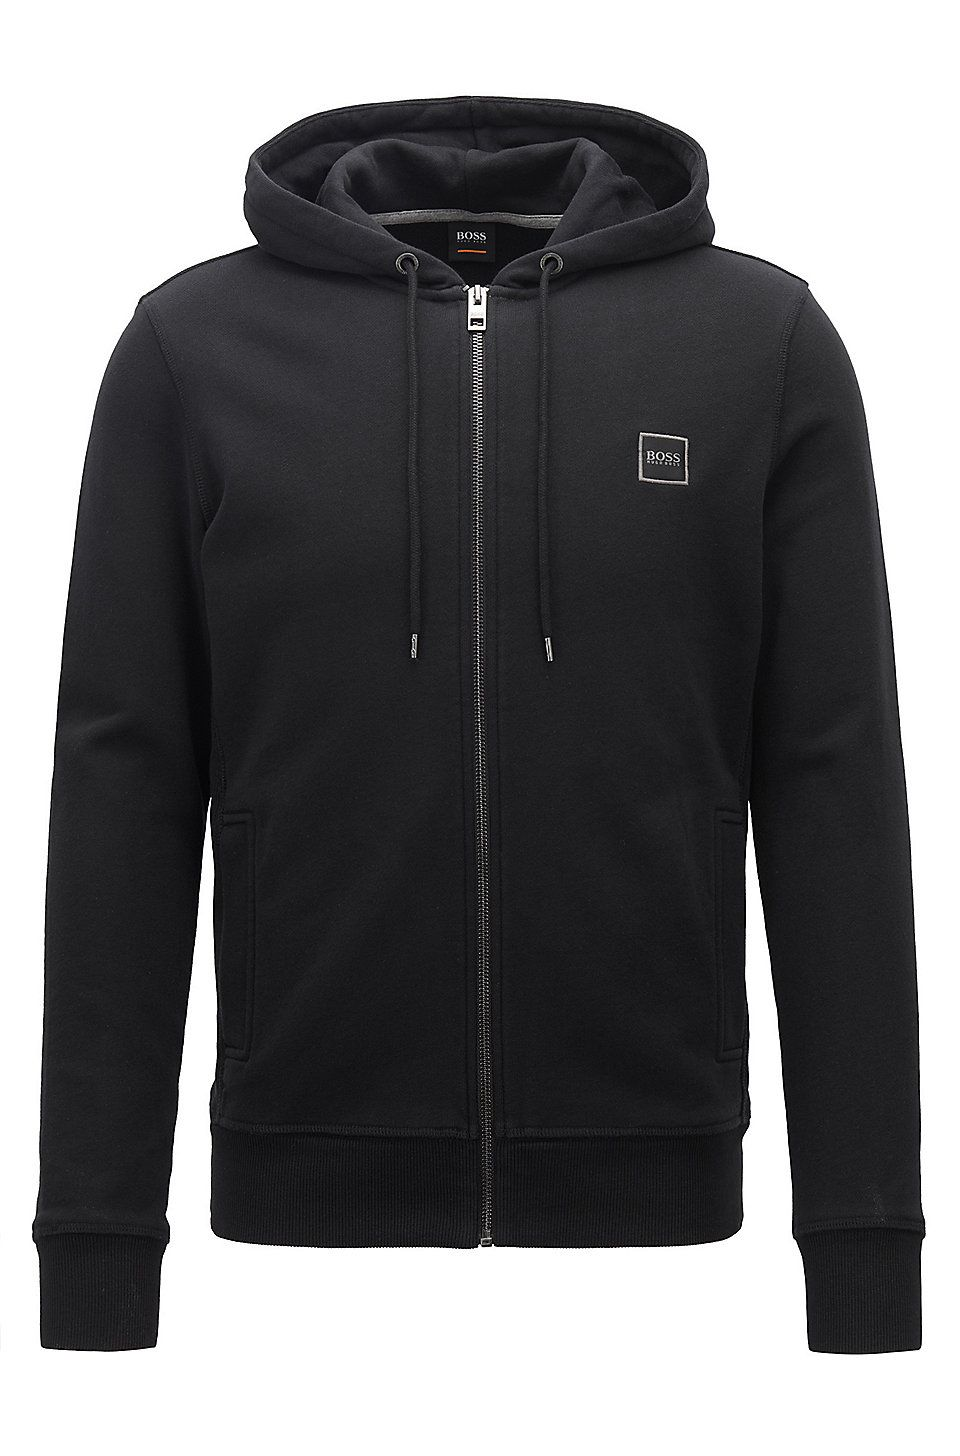 dfc5d944 HUGO BOSS Hooded jacket in French terry with ribbed inserts - Black  Tracksuits from BOSS for Men in the official HUGO BOSS Online Store free  shipping